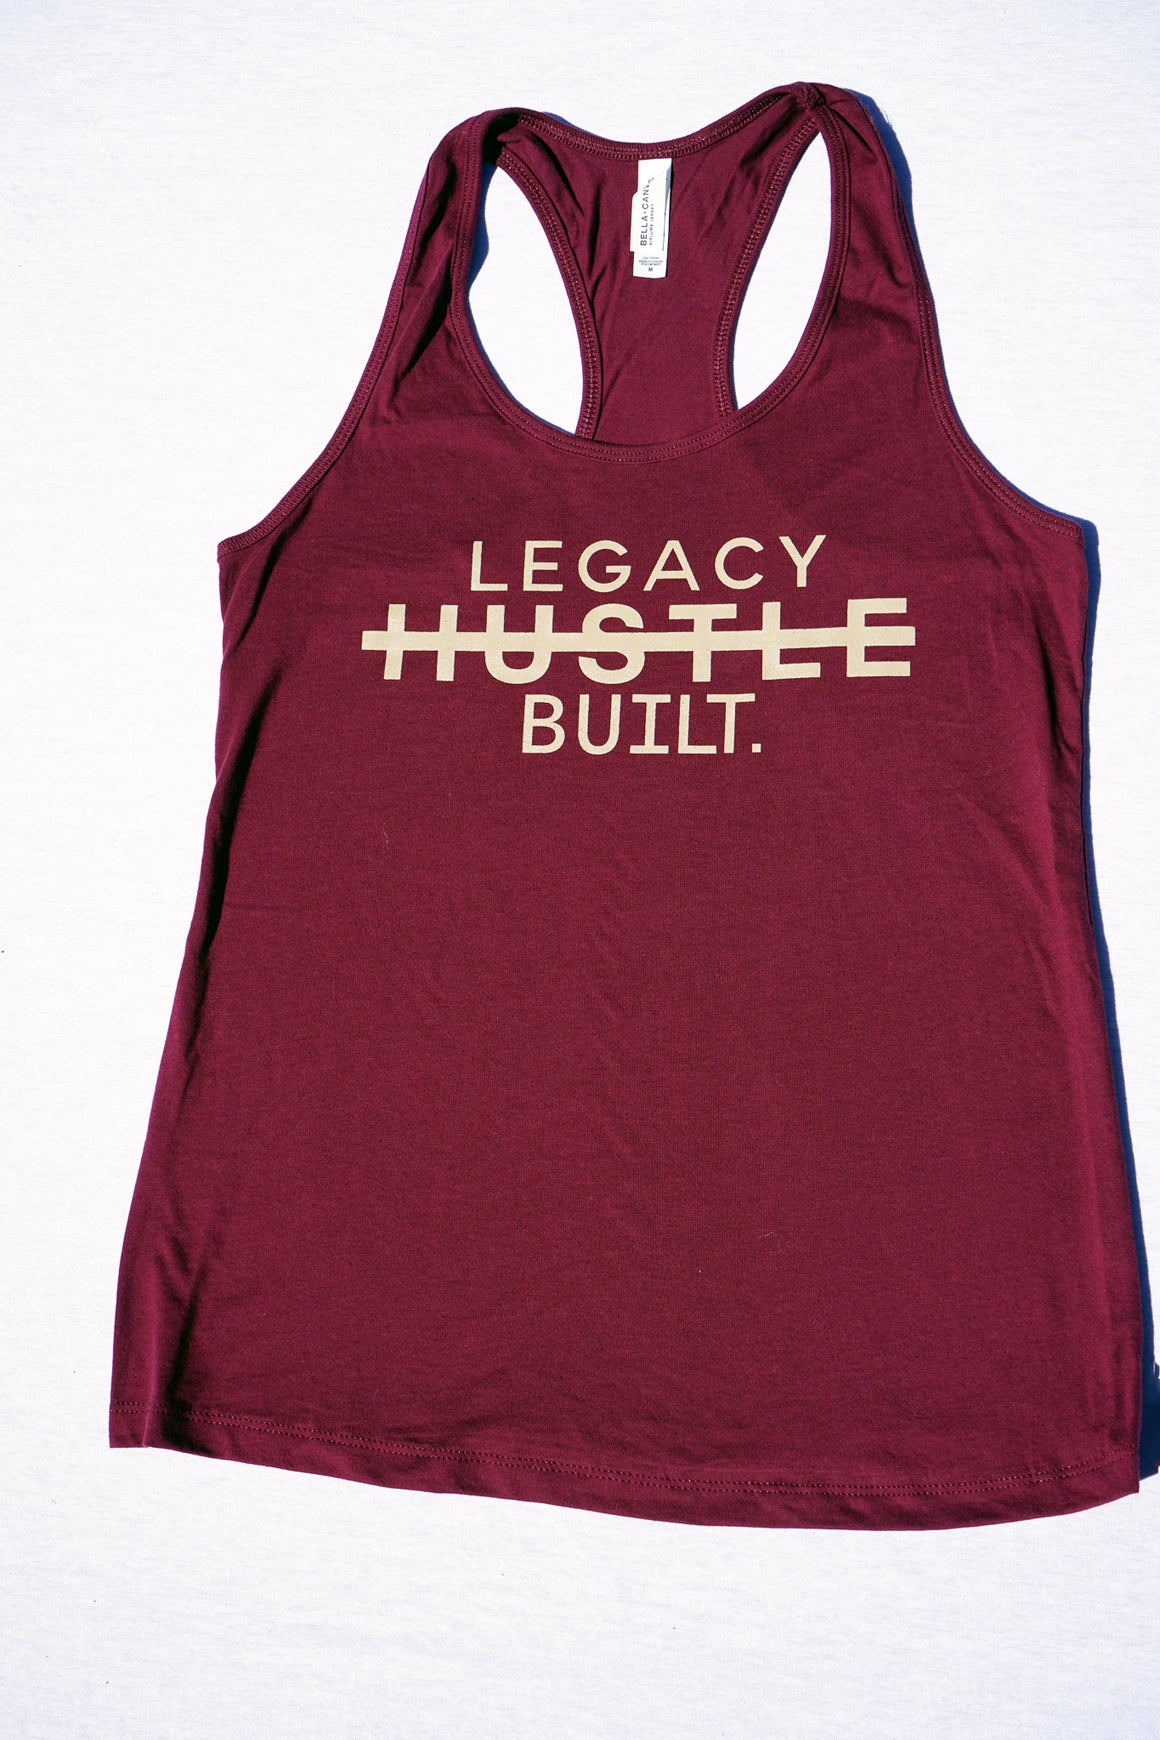 FIT RACER BACK TANK - BURGUNDY